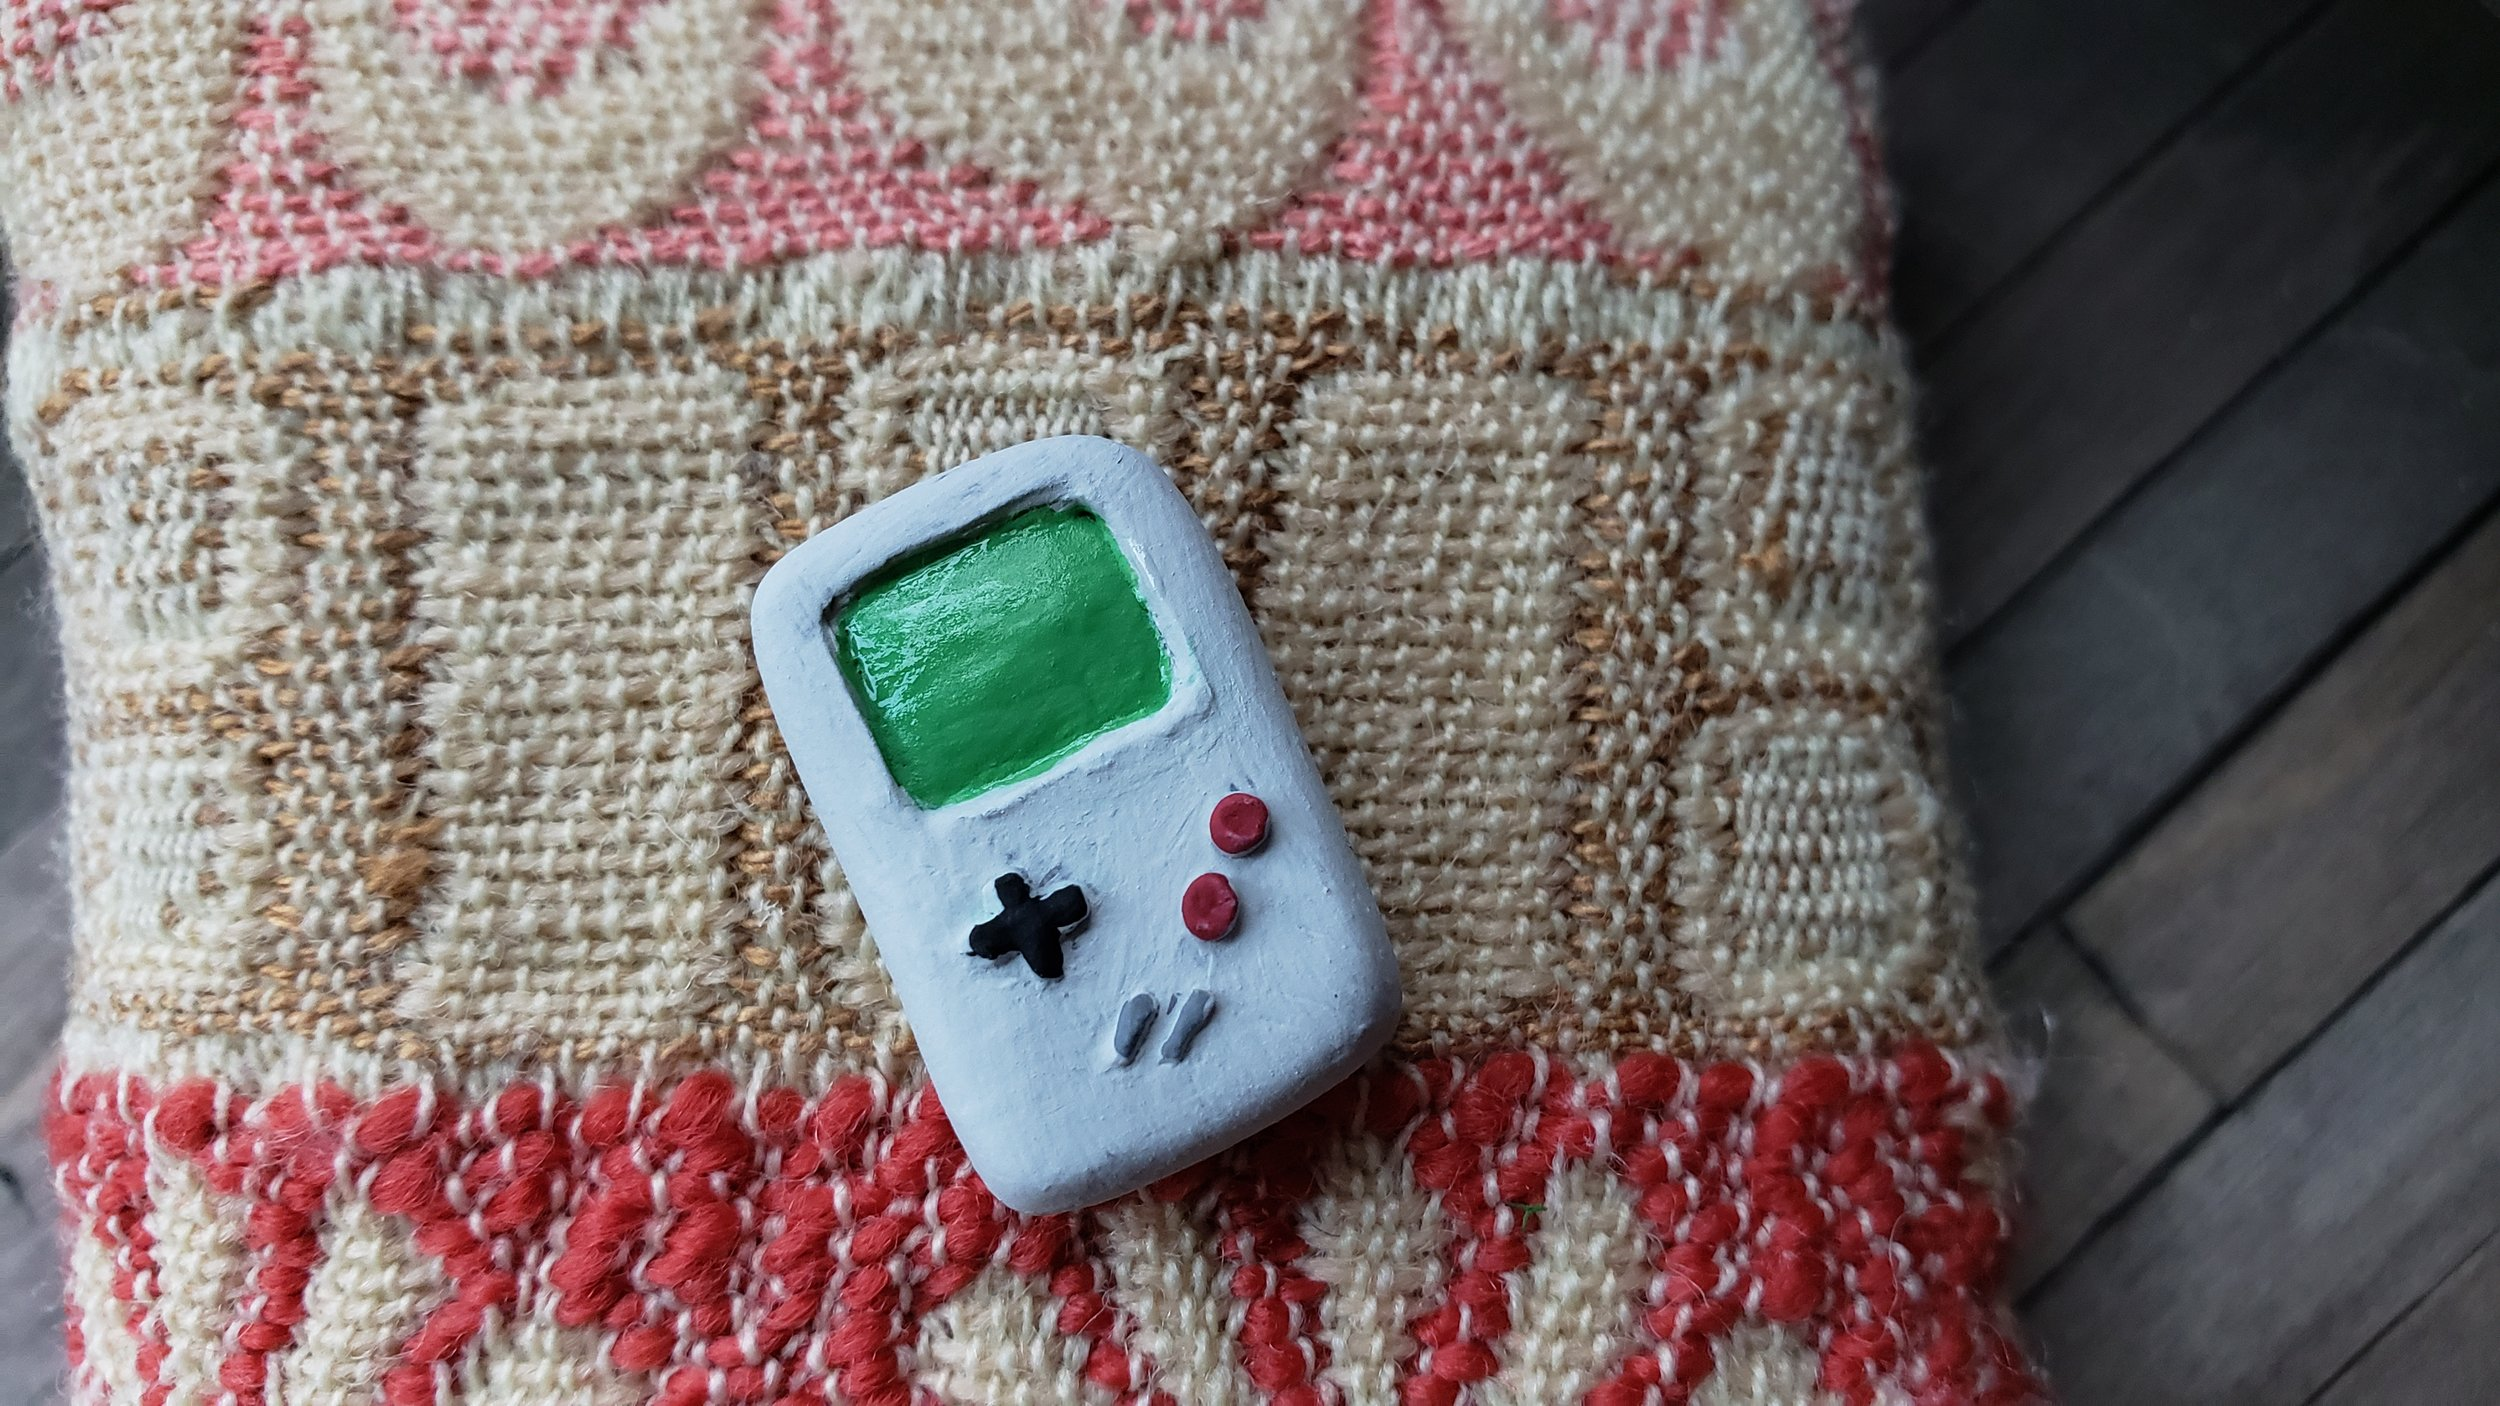 Miniature Prop - used a gameboy for reference   Materials: polymer clay, painted with acrylic paint